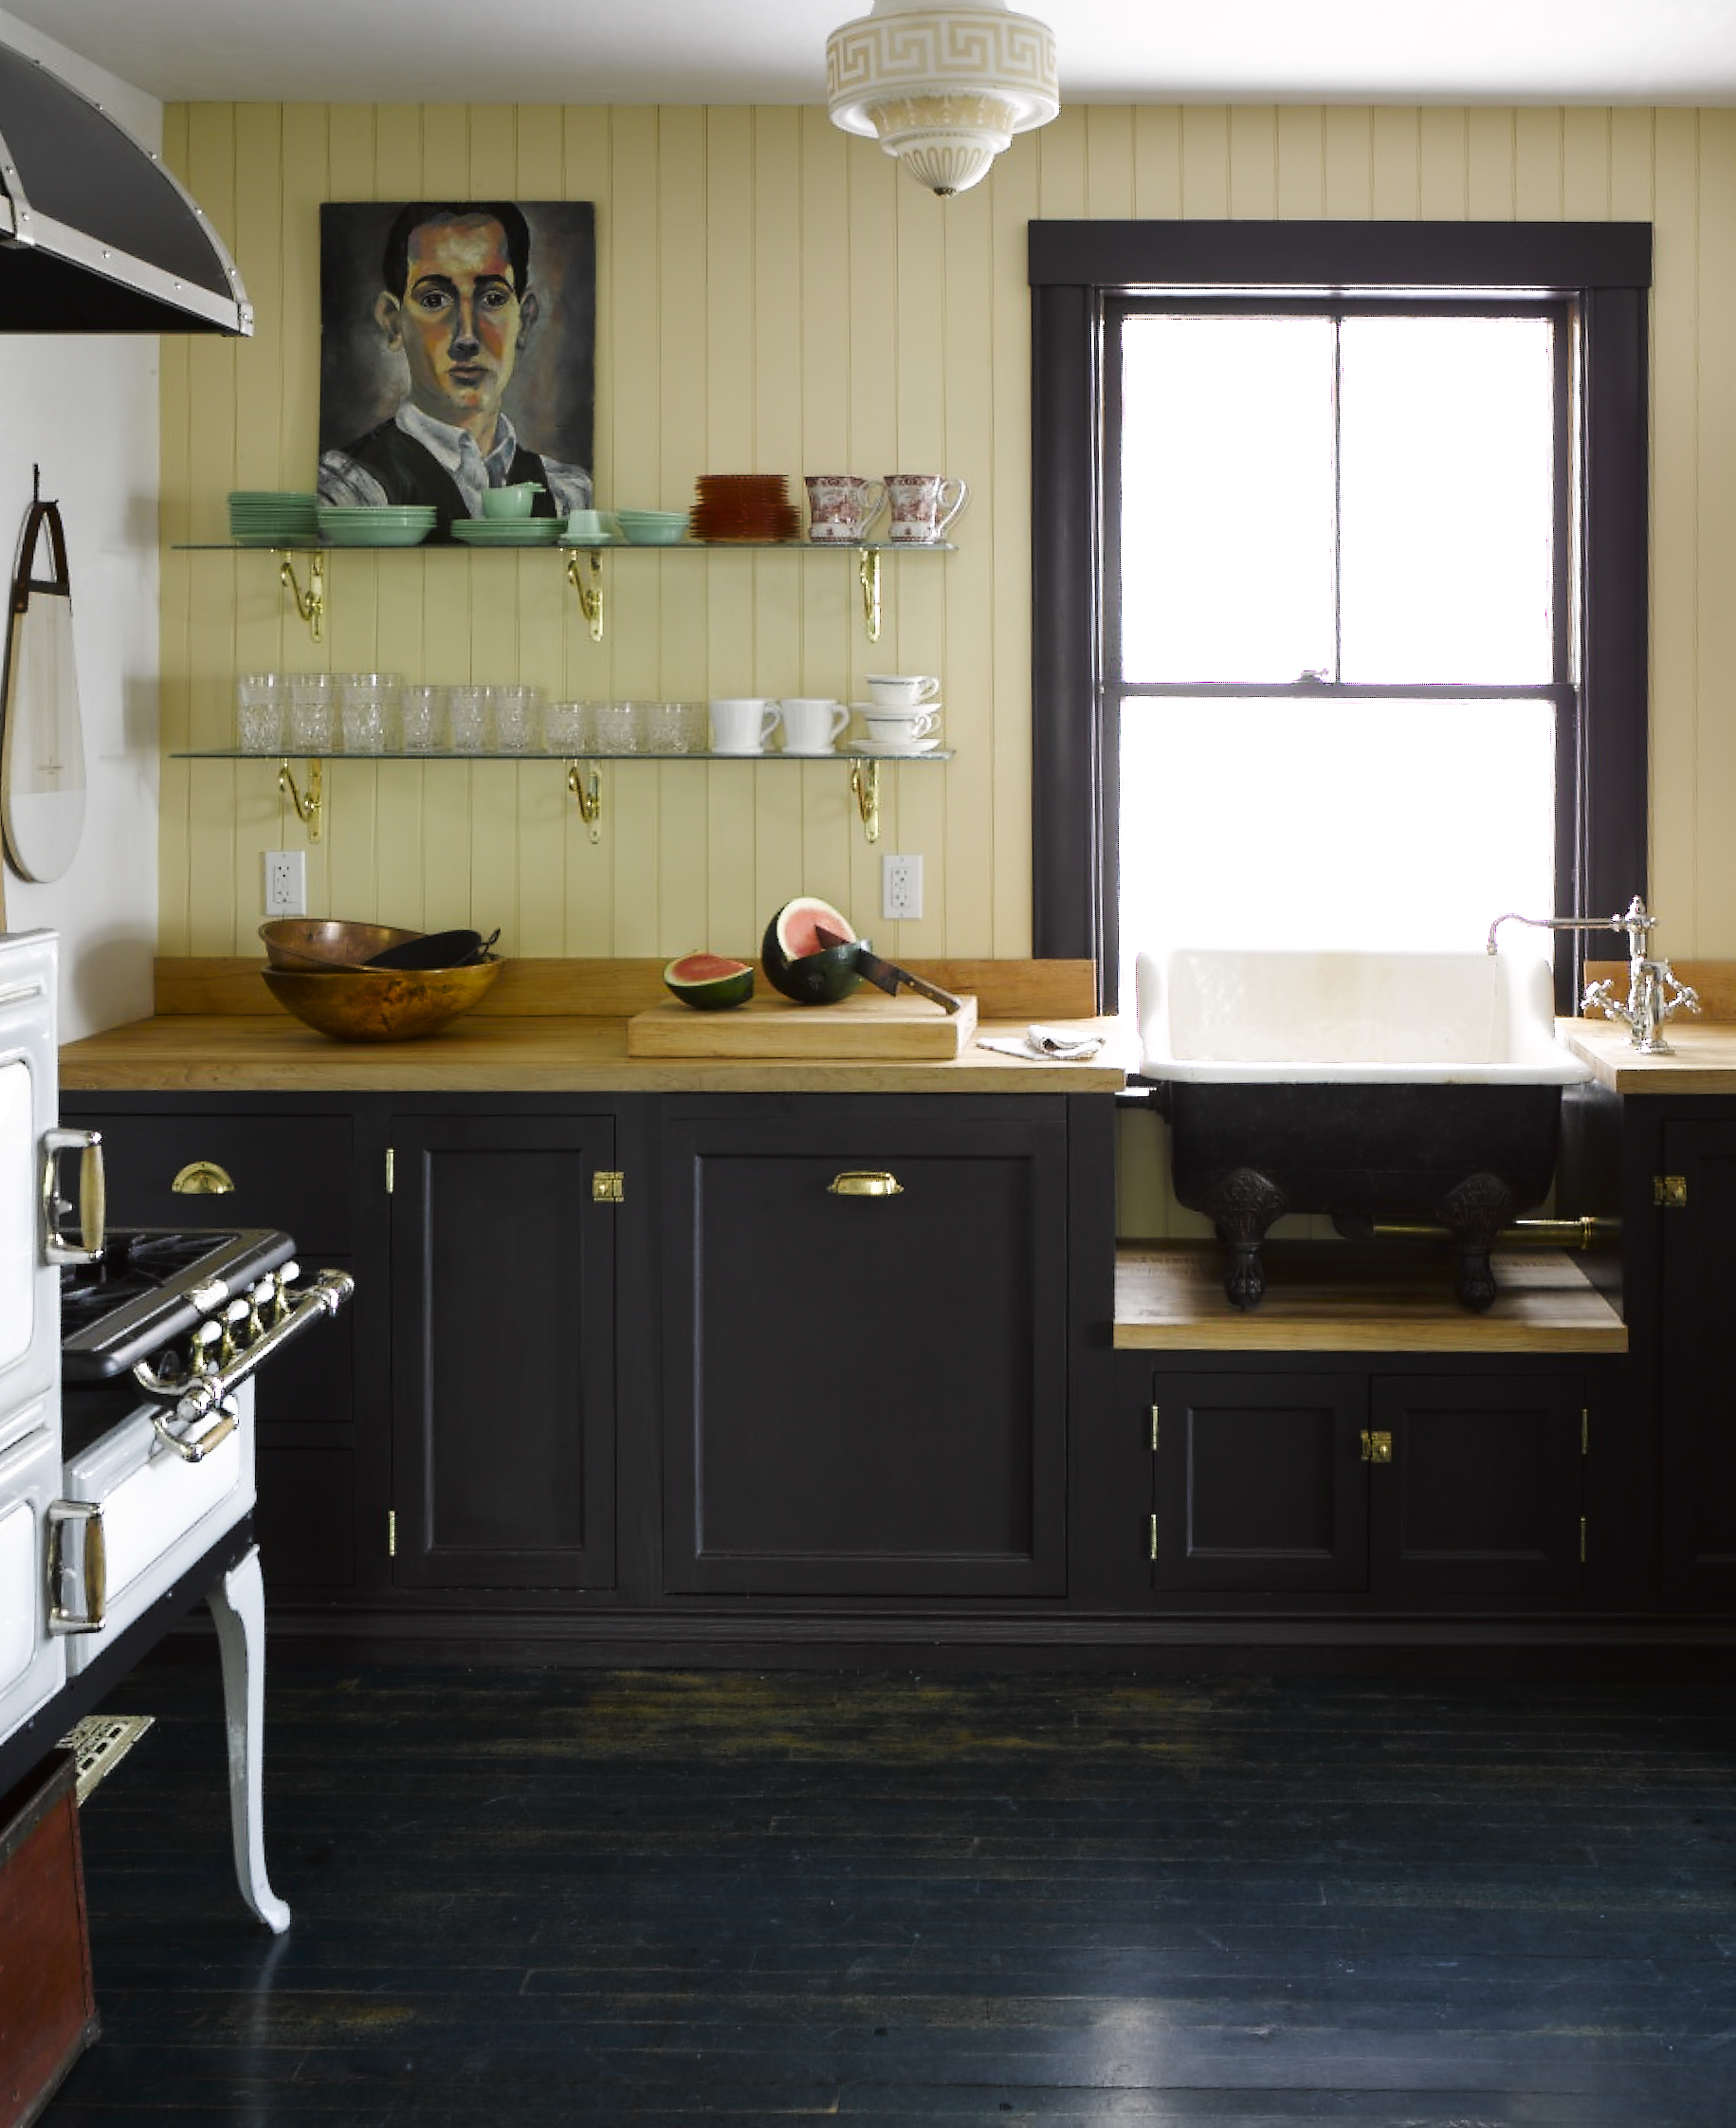 The sink makes this basic farmhouse kitchen swoon-worthy.